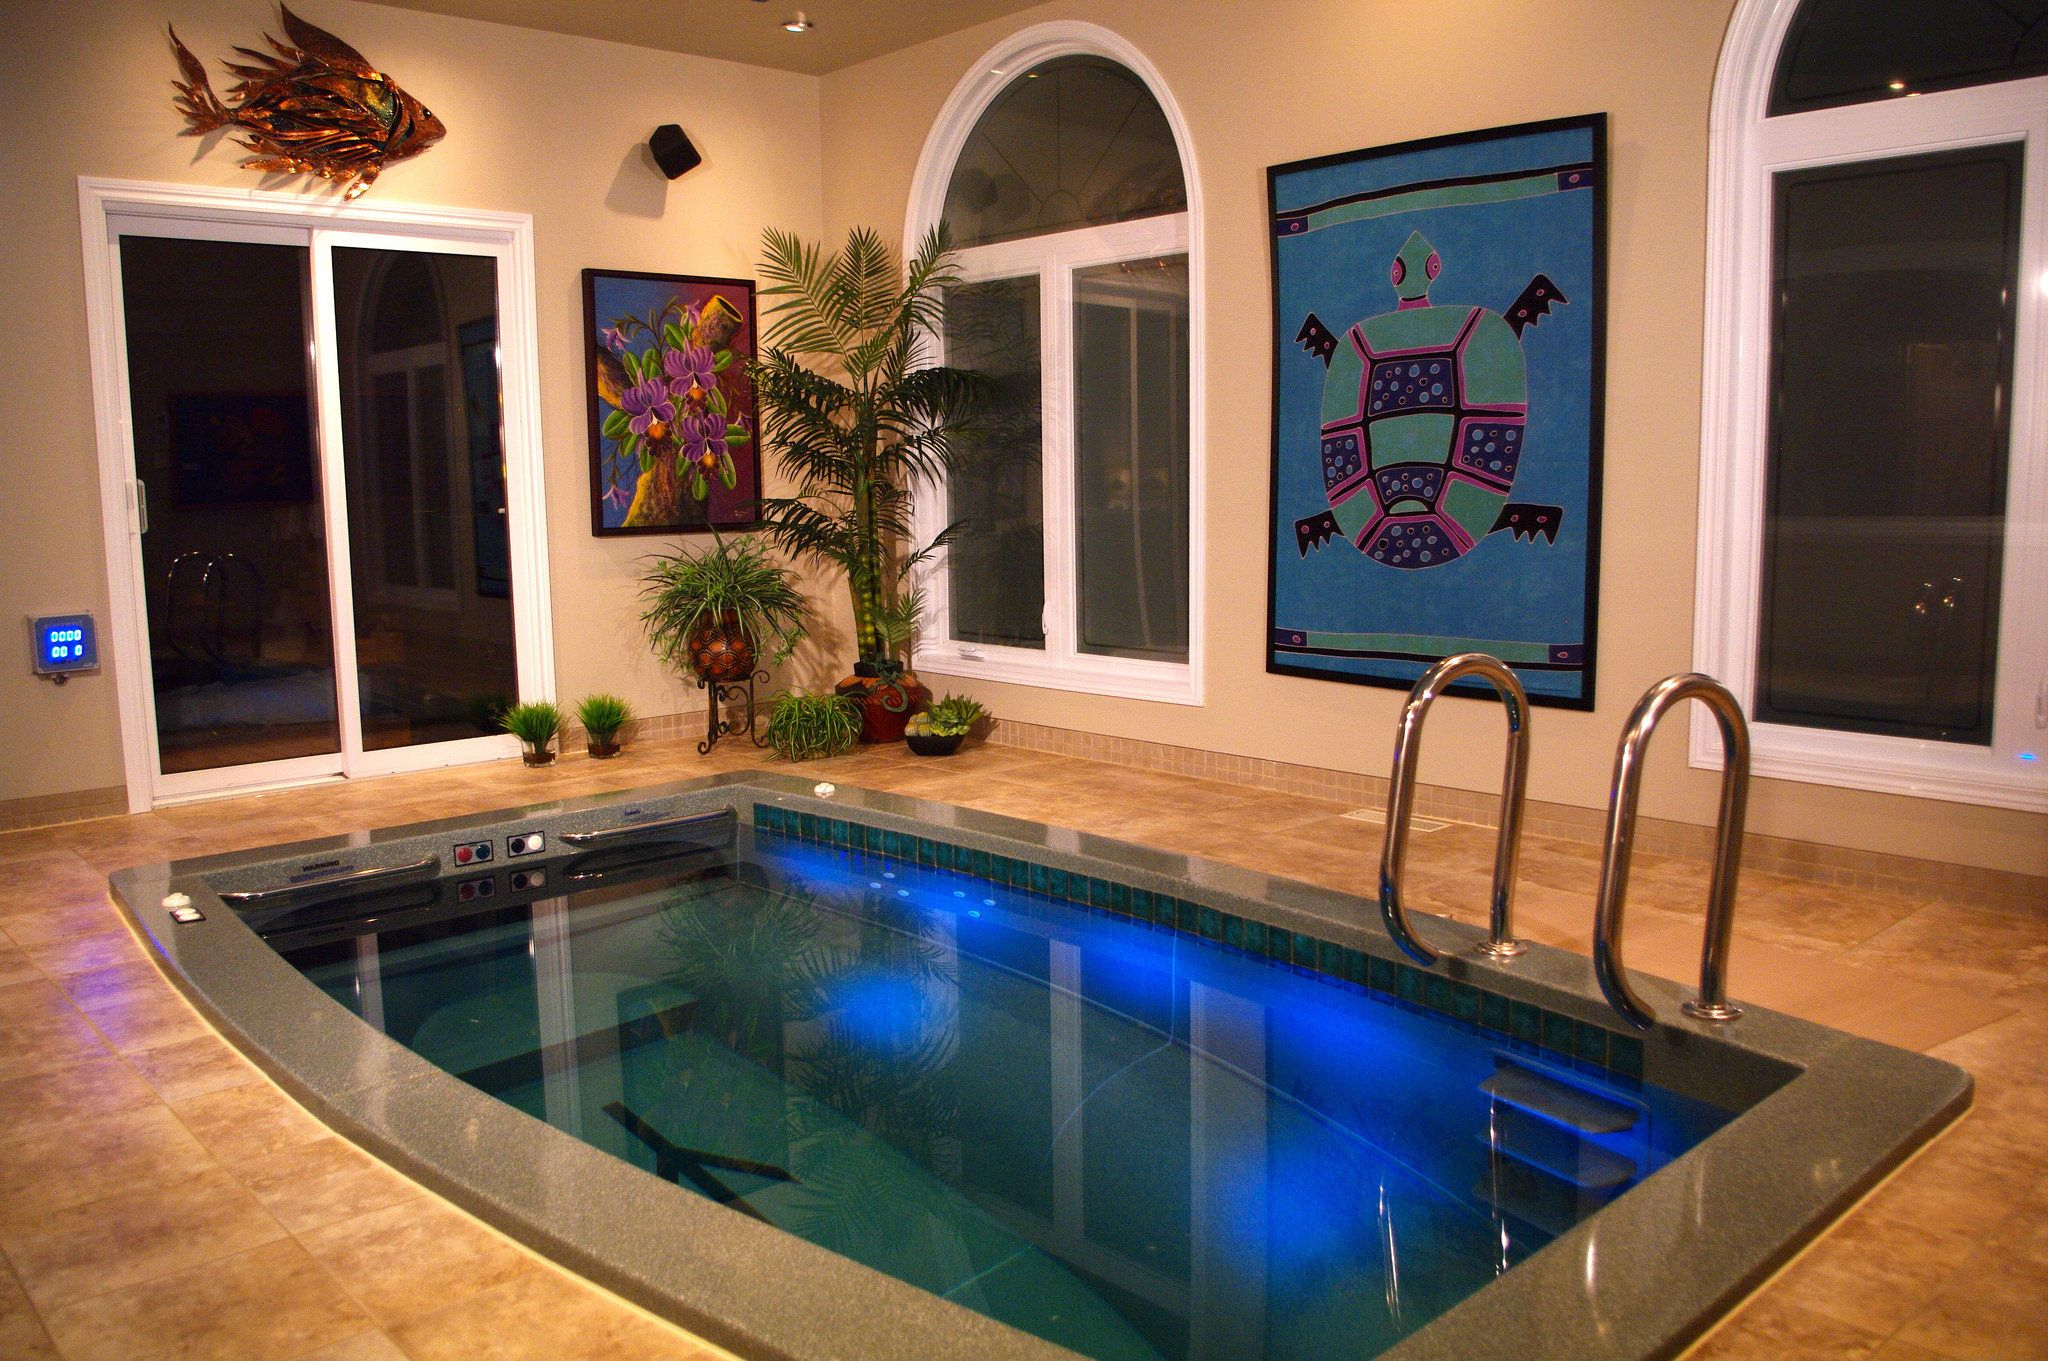 Residential Lap Pools - Exercise or Hydrotherapy | Stunning ...